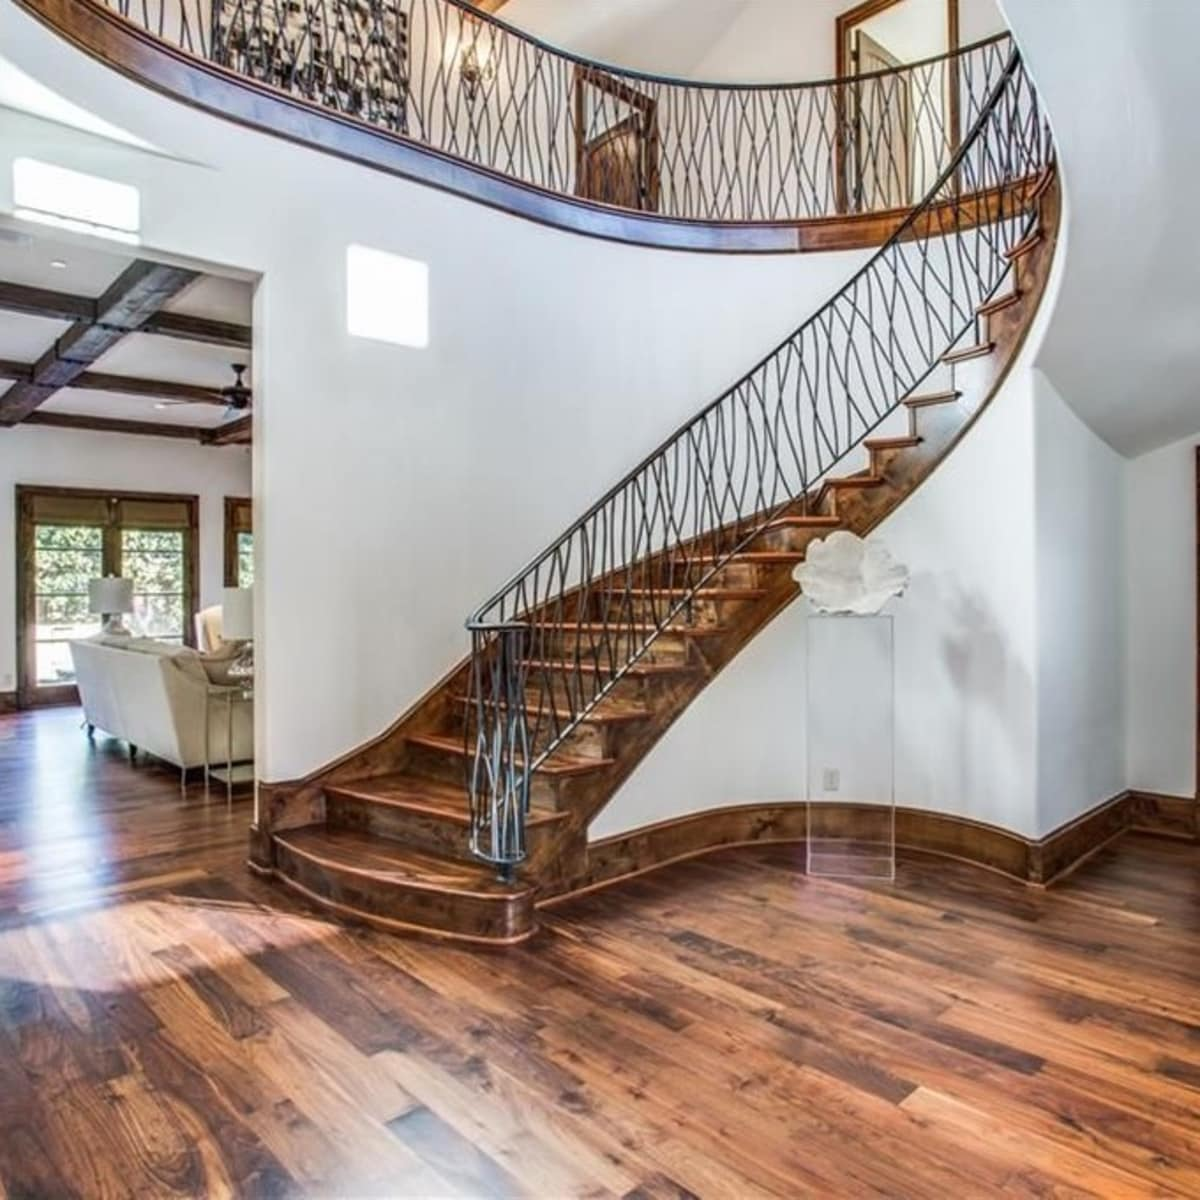 Wade Phillips Home for sale, 6115 Norway Road, Dallas